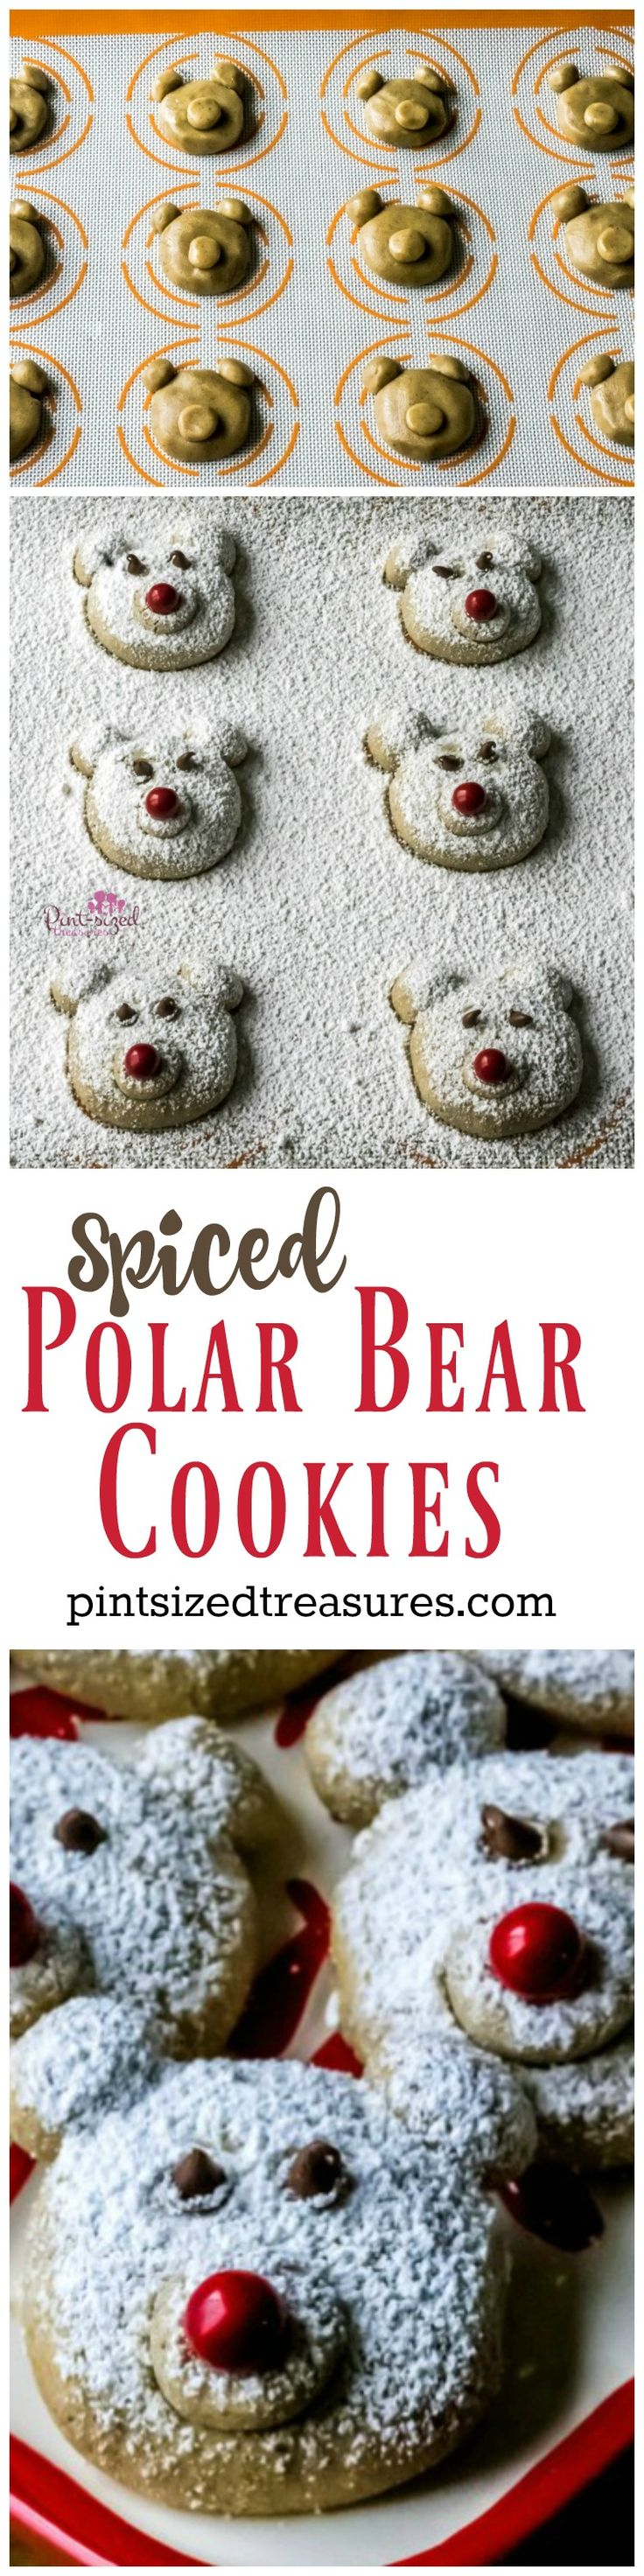 Spiced polar bear cookies are the CUTEST cookies in the world! These adorable, super-soft cookies will be a hit at your next holiday party!